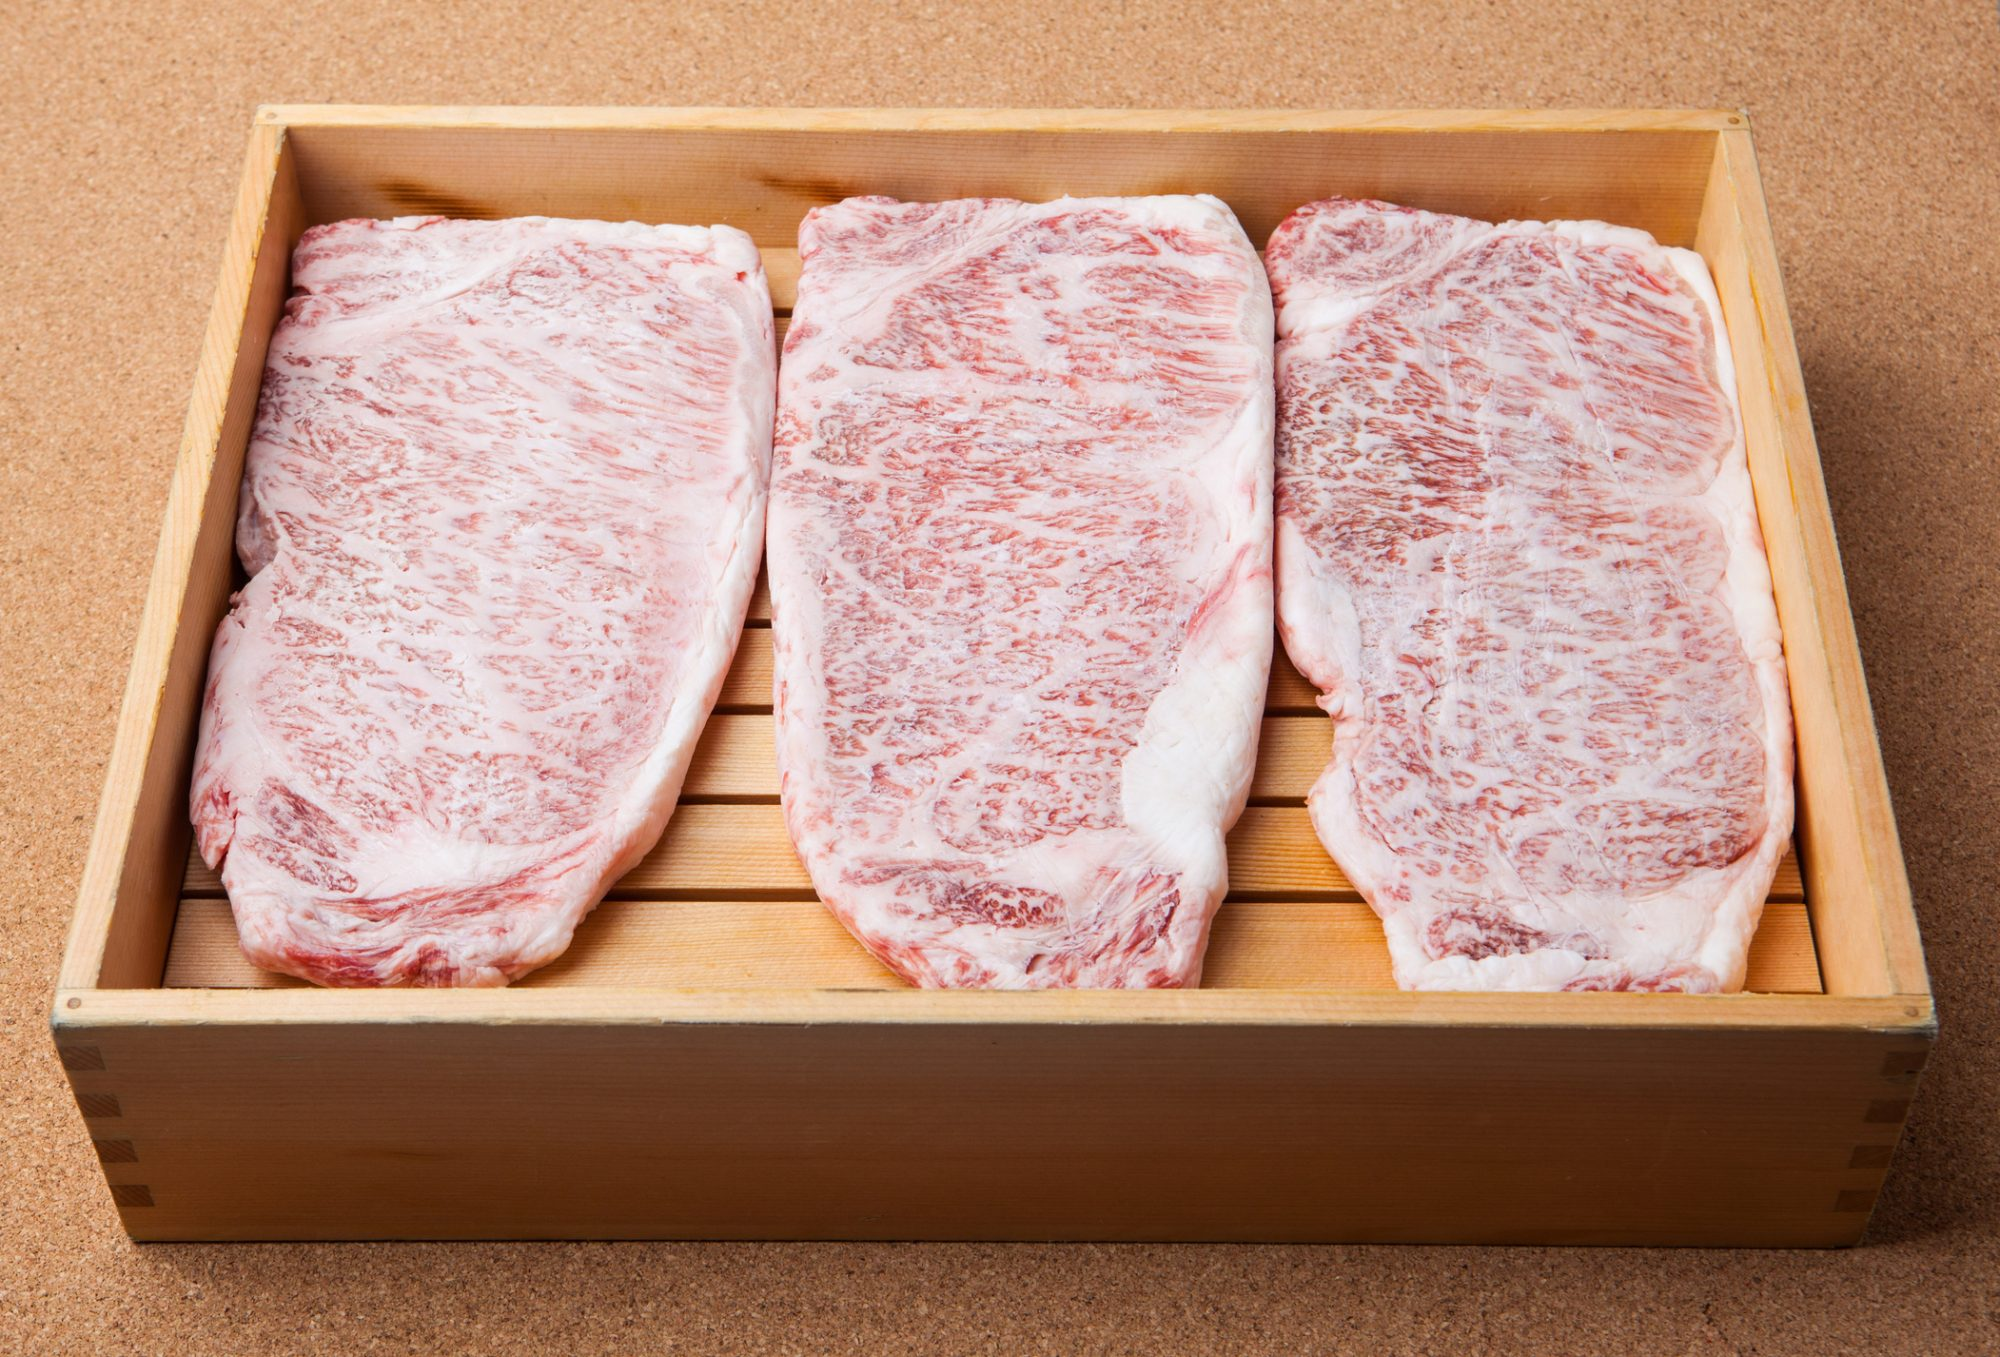 Costco Might Be the Best Place to Buy Wagyu Beef